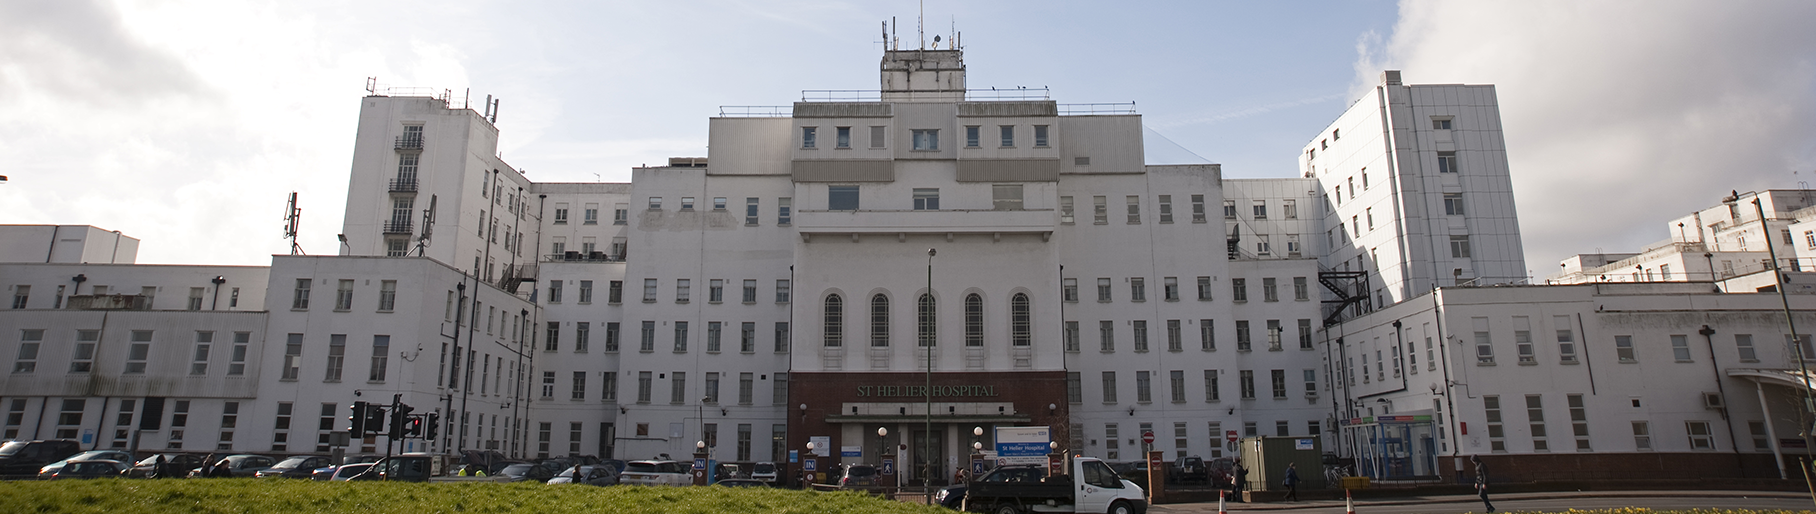 St. Helier Hospital, UK